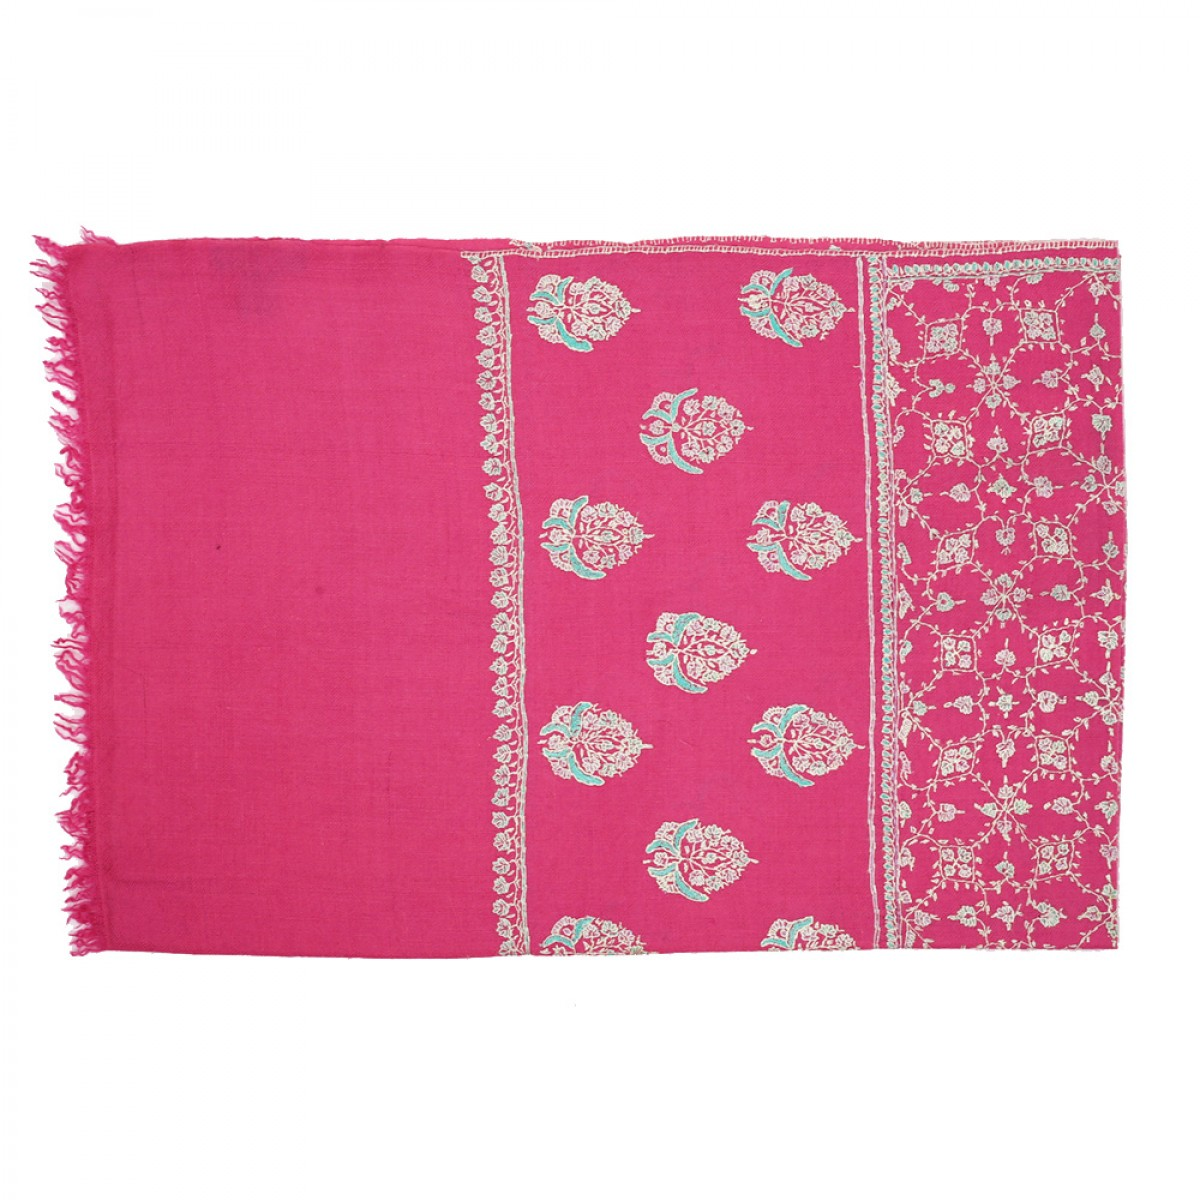 Embroidered Pashmina Stole - Taffy Pink